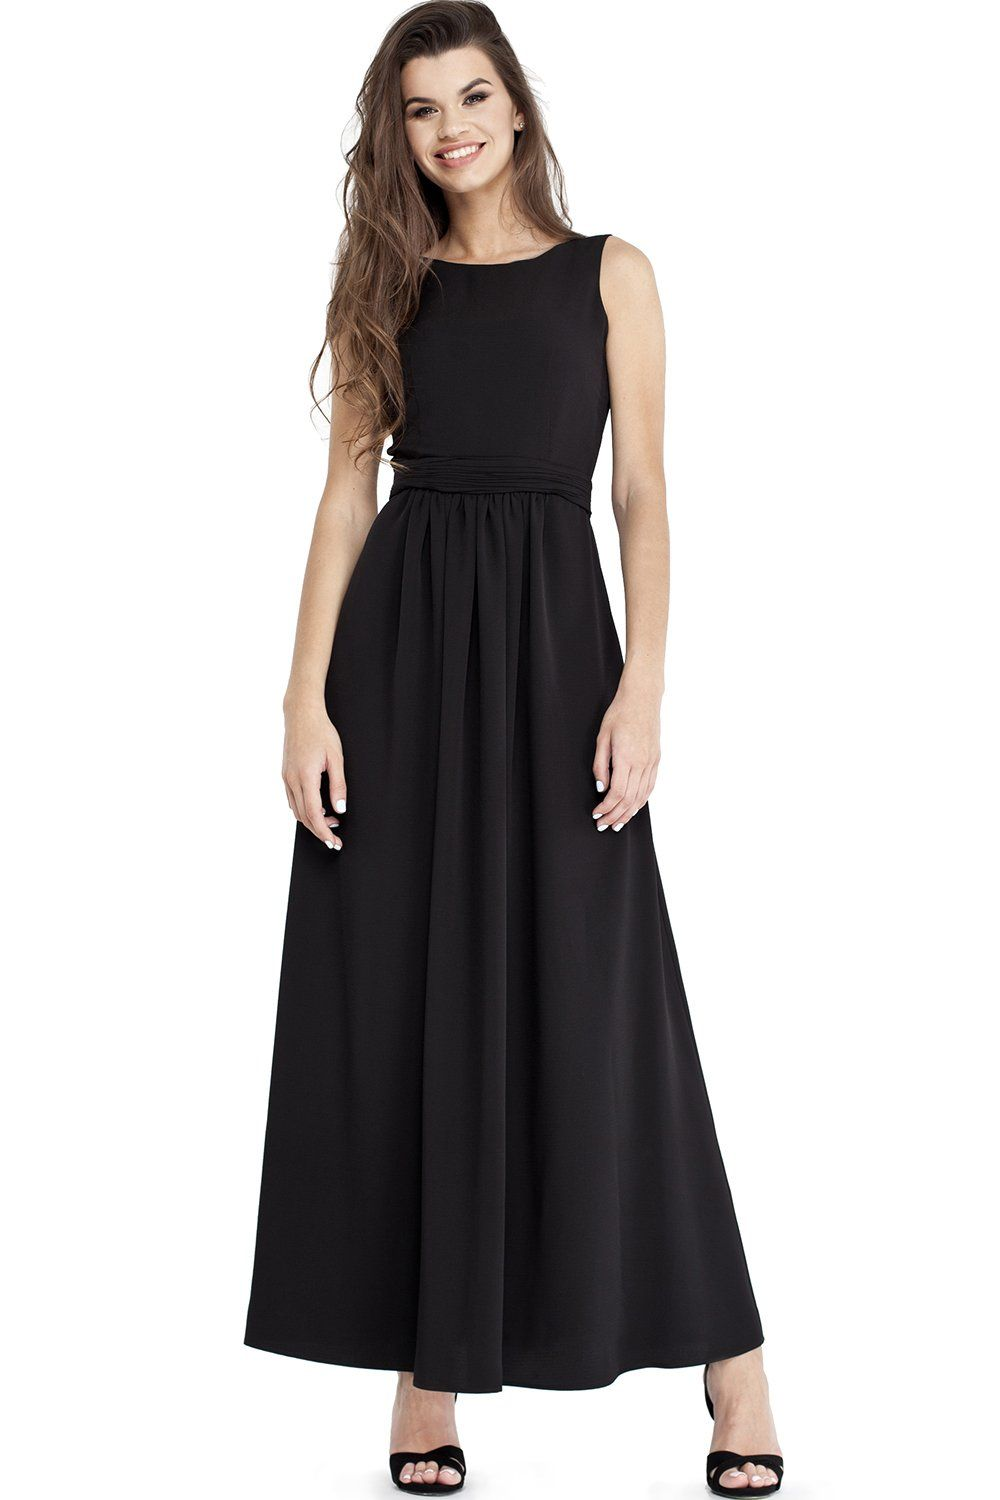 Vilonna womens semi formal long maxi dresses sexy summer belted